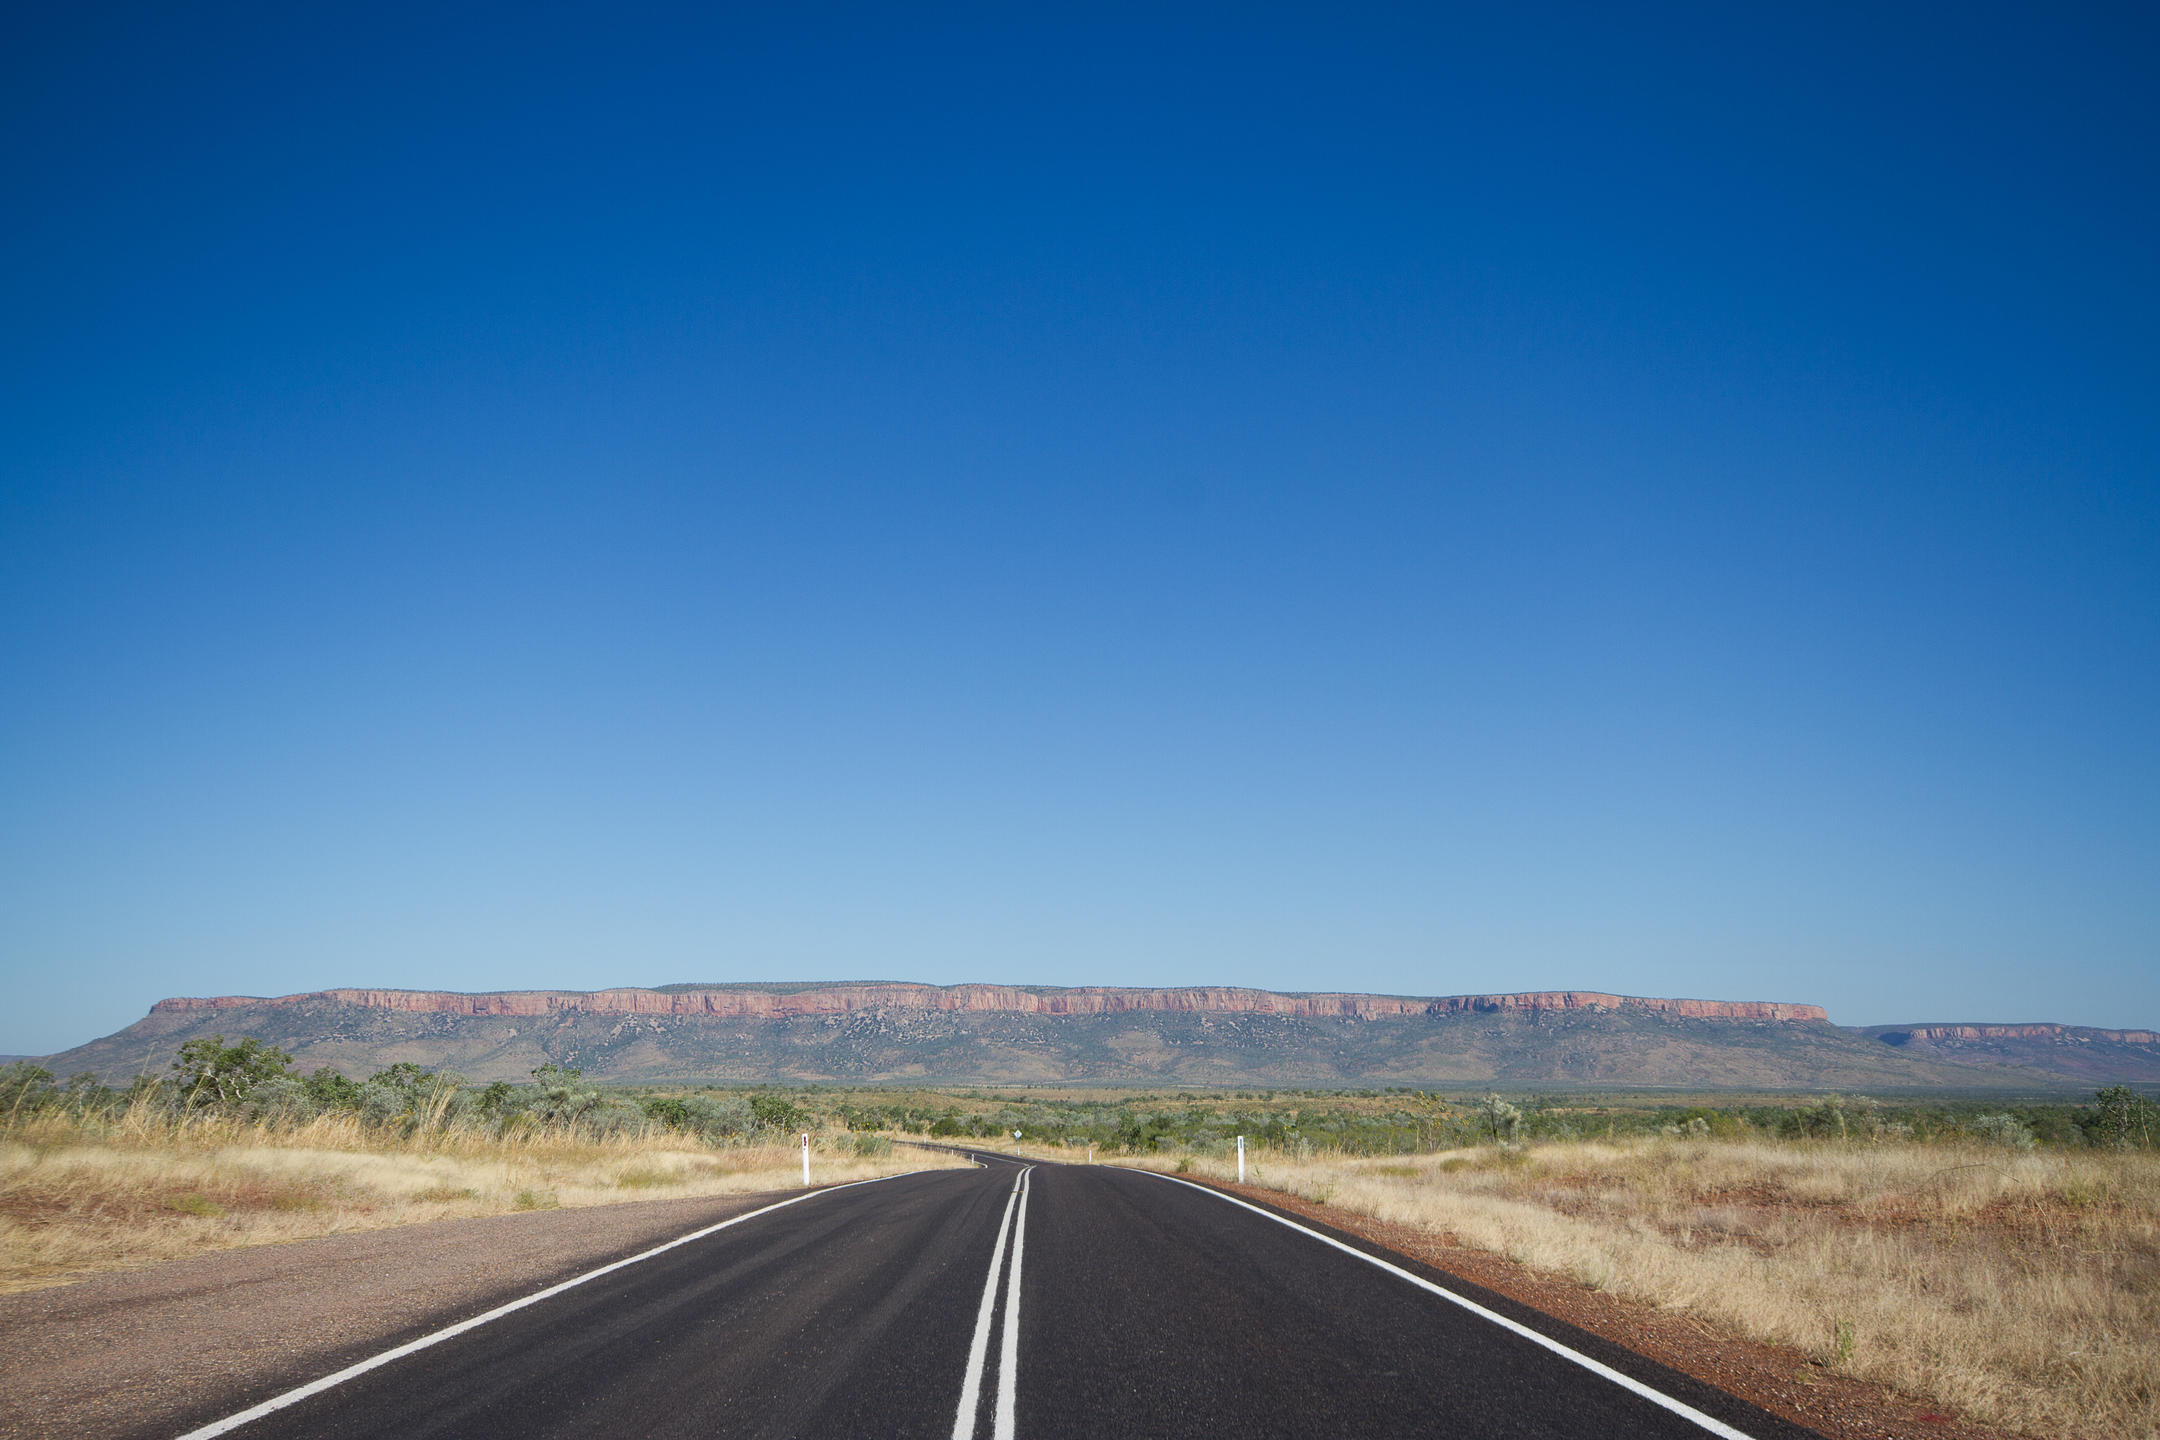 An empty road leading to mountains in the distance